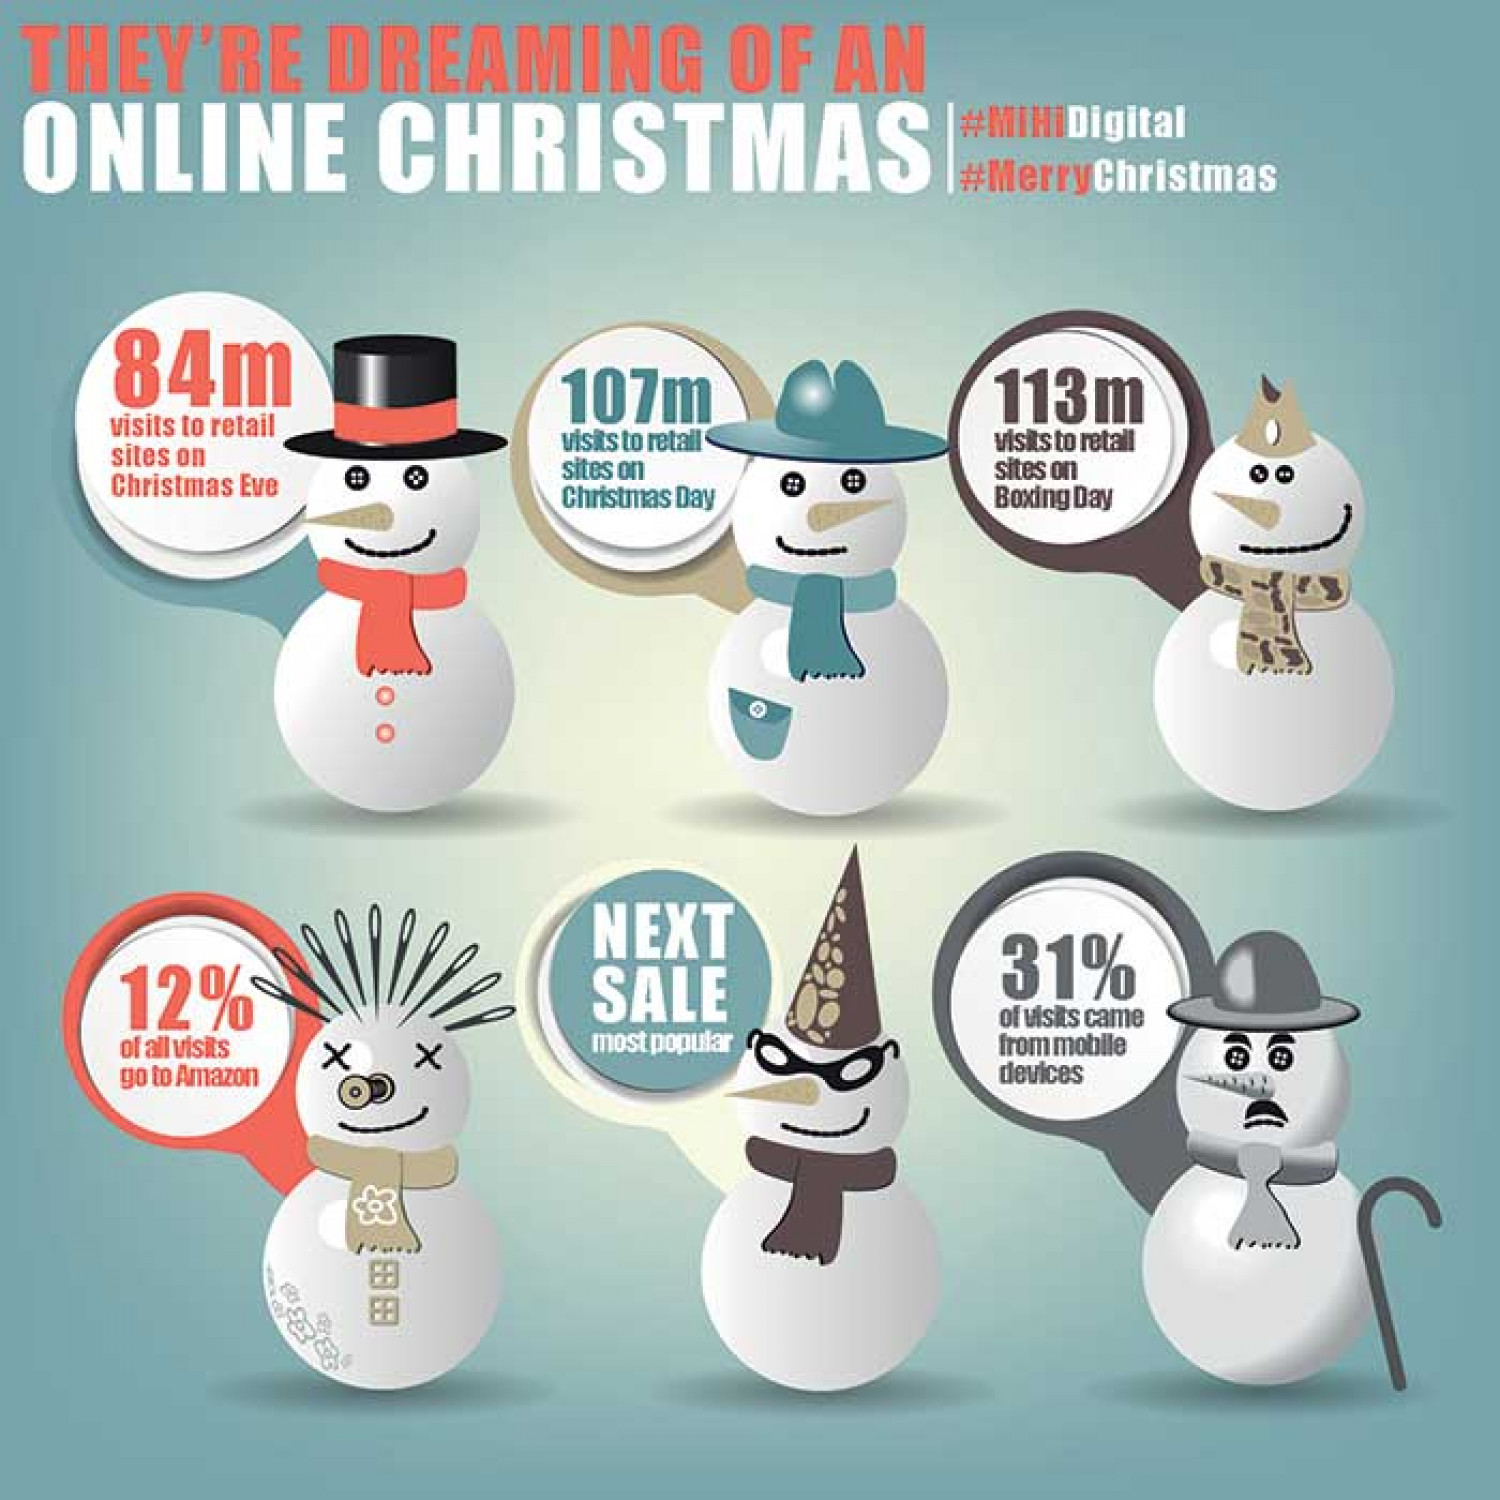 Christmas E-commerce Statistics Infographic